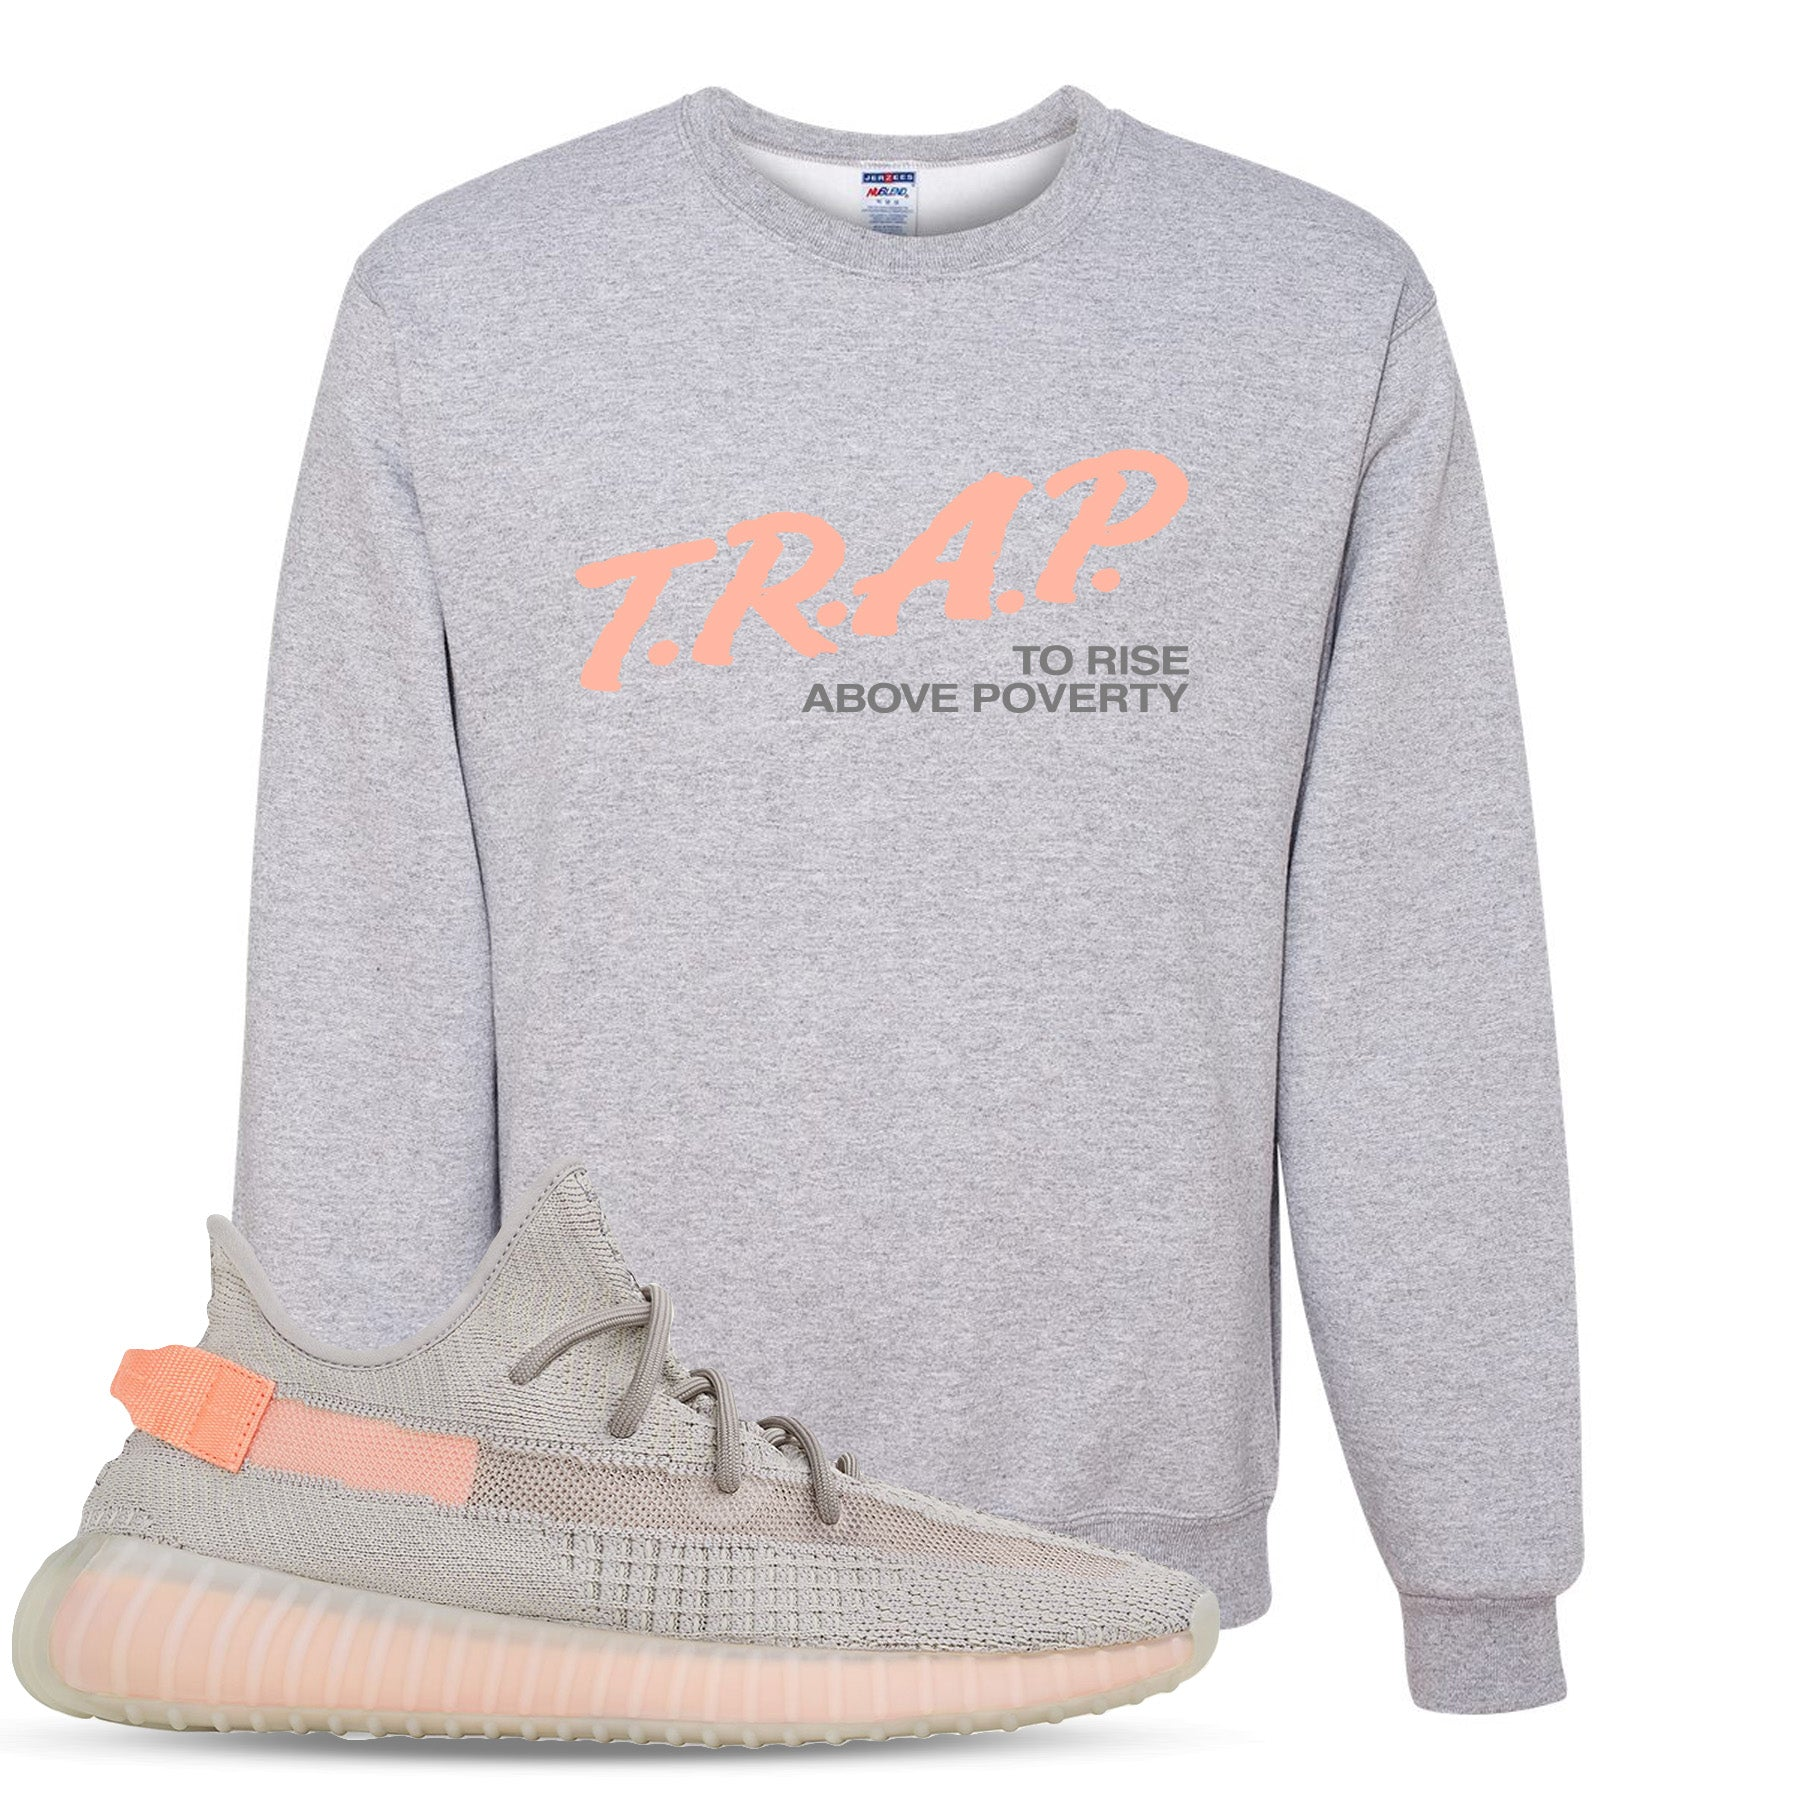 yeezy true form outfit